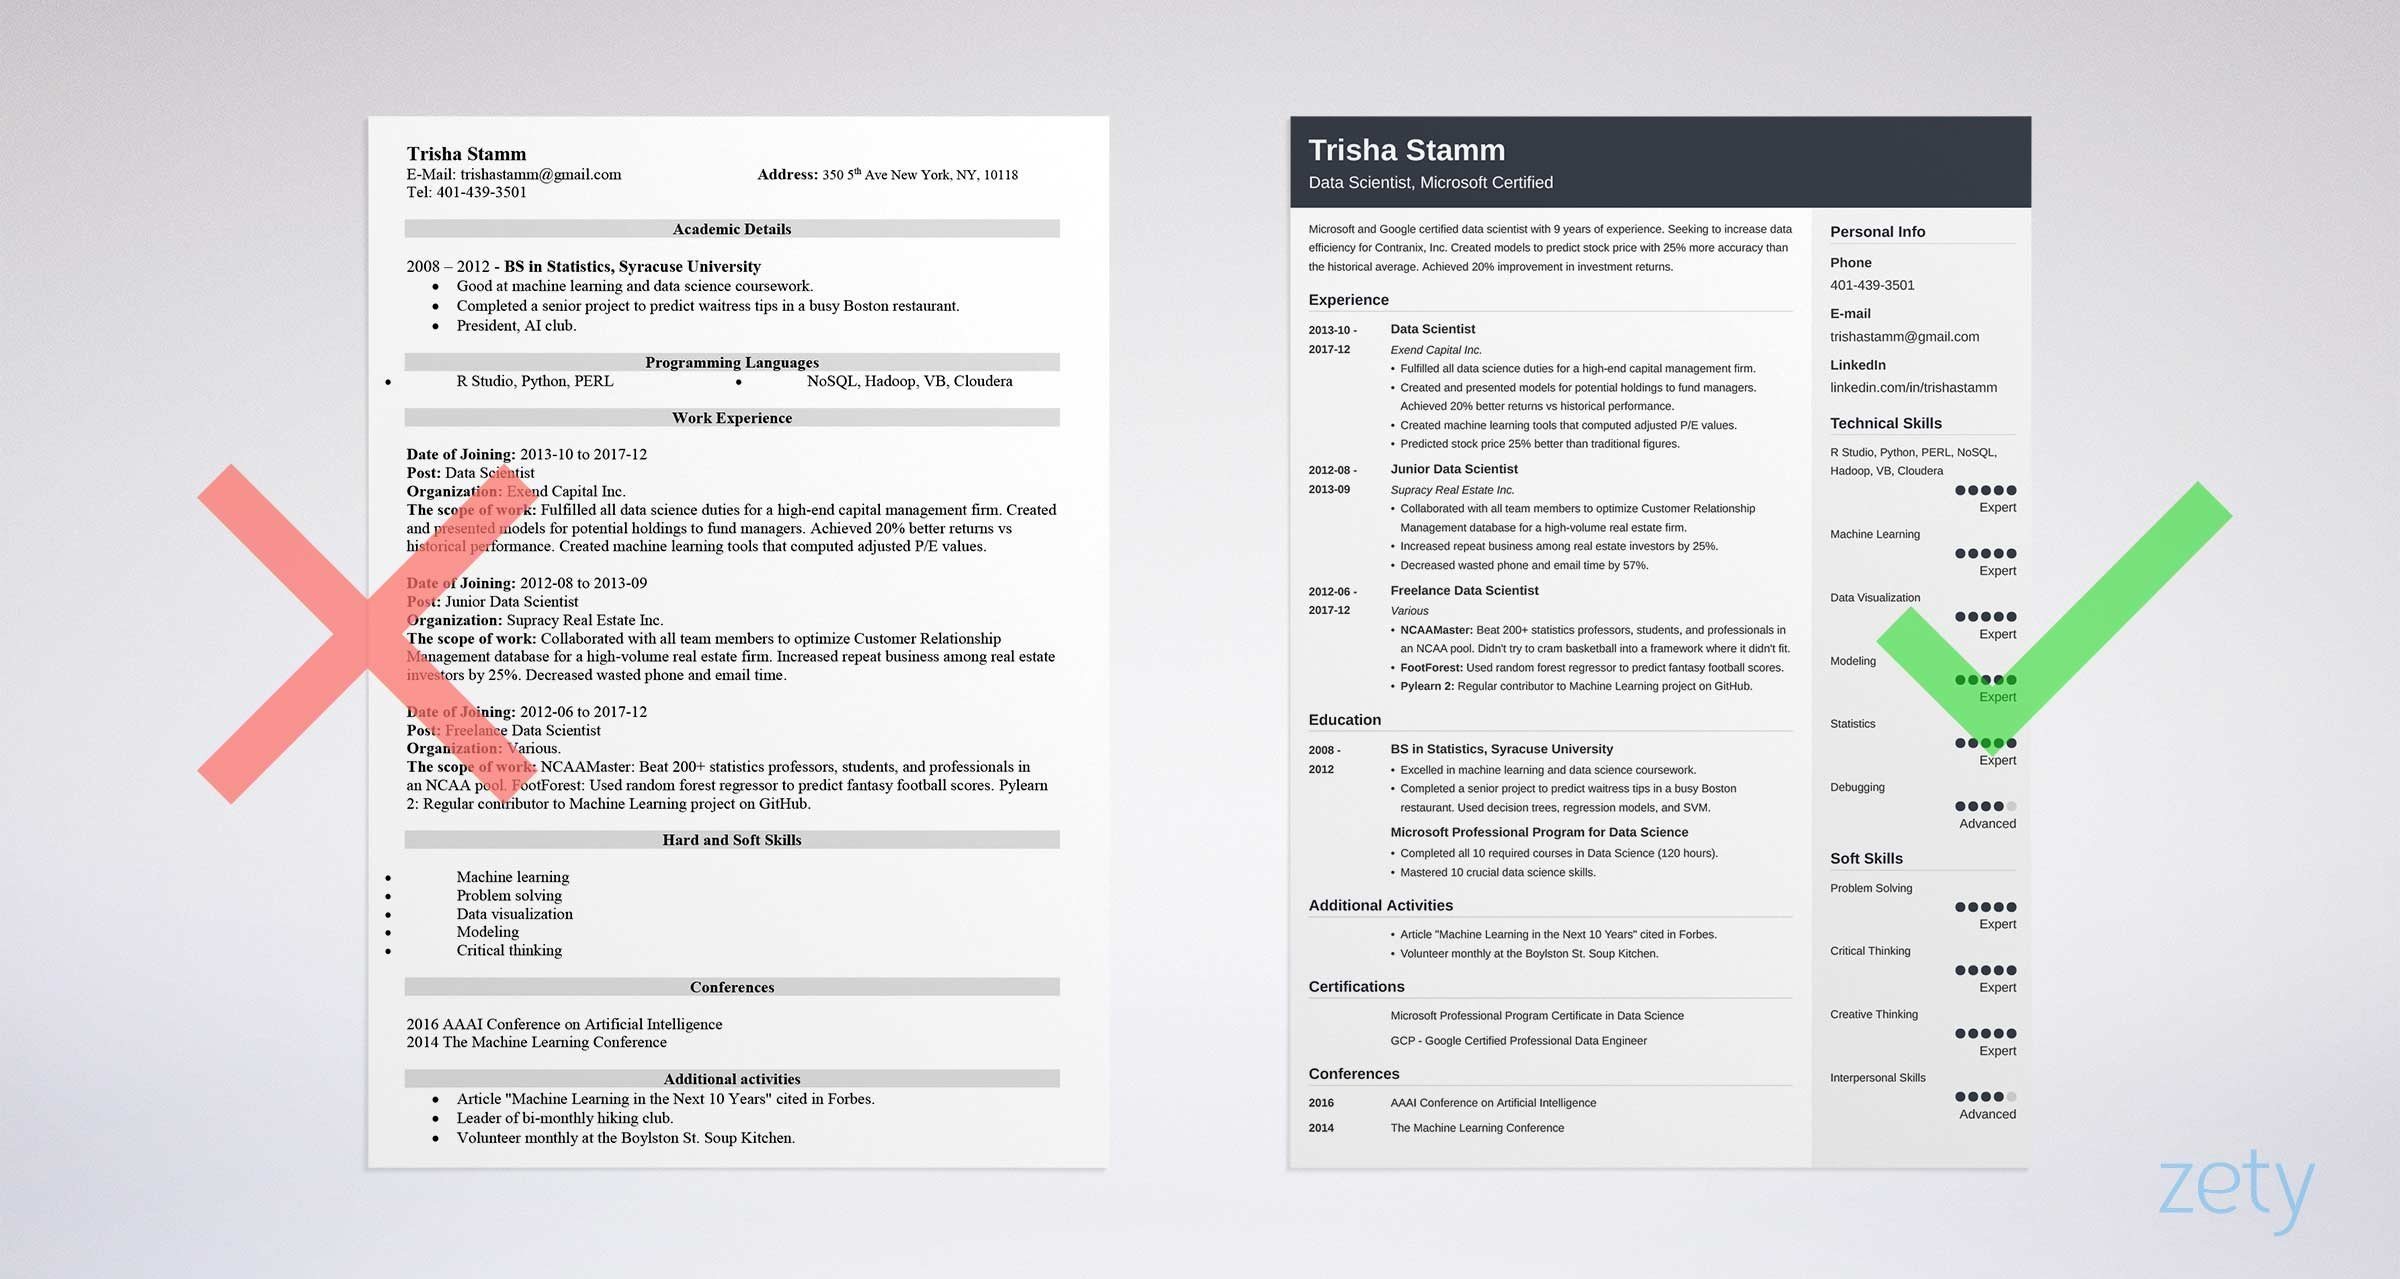 data scientist resume sample template driven guide jobs without dates design engineer Resume Data Scientist Jobs Resume Sample